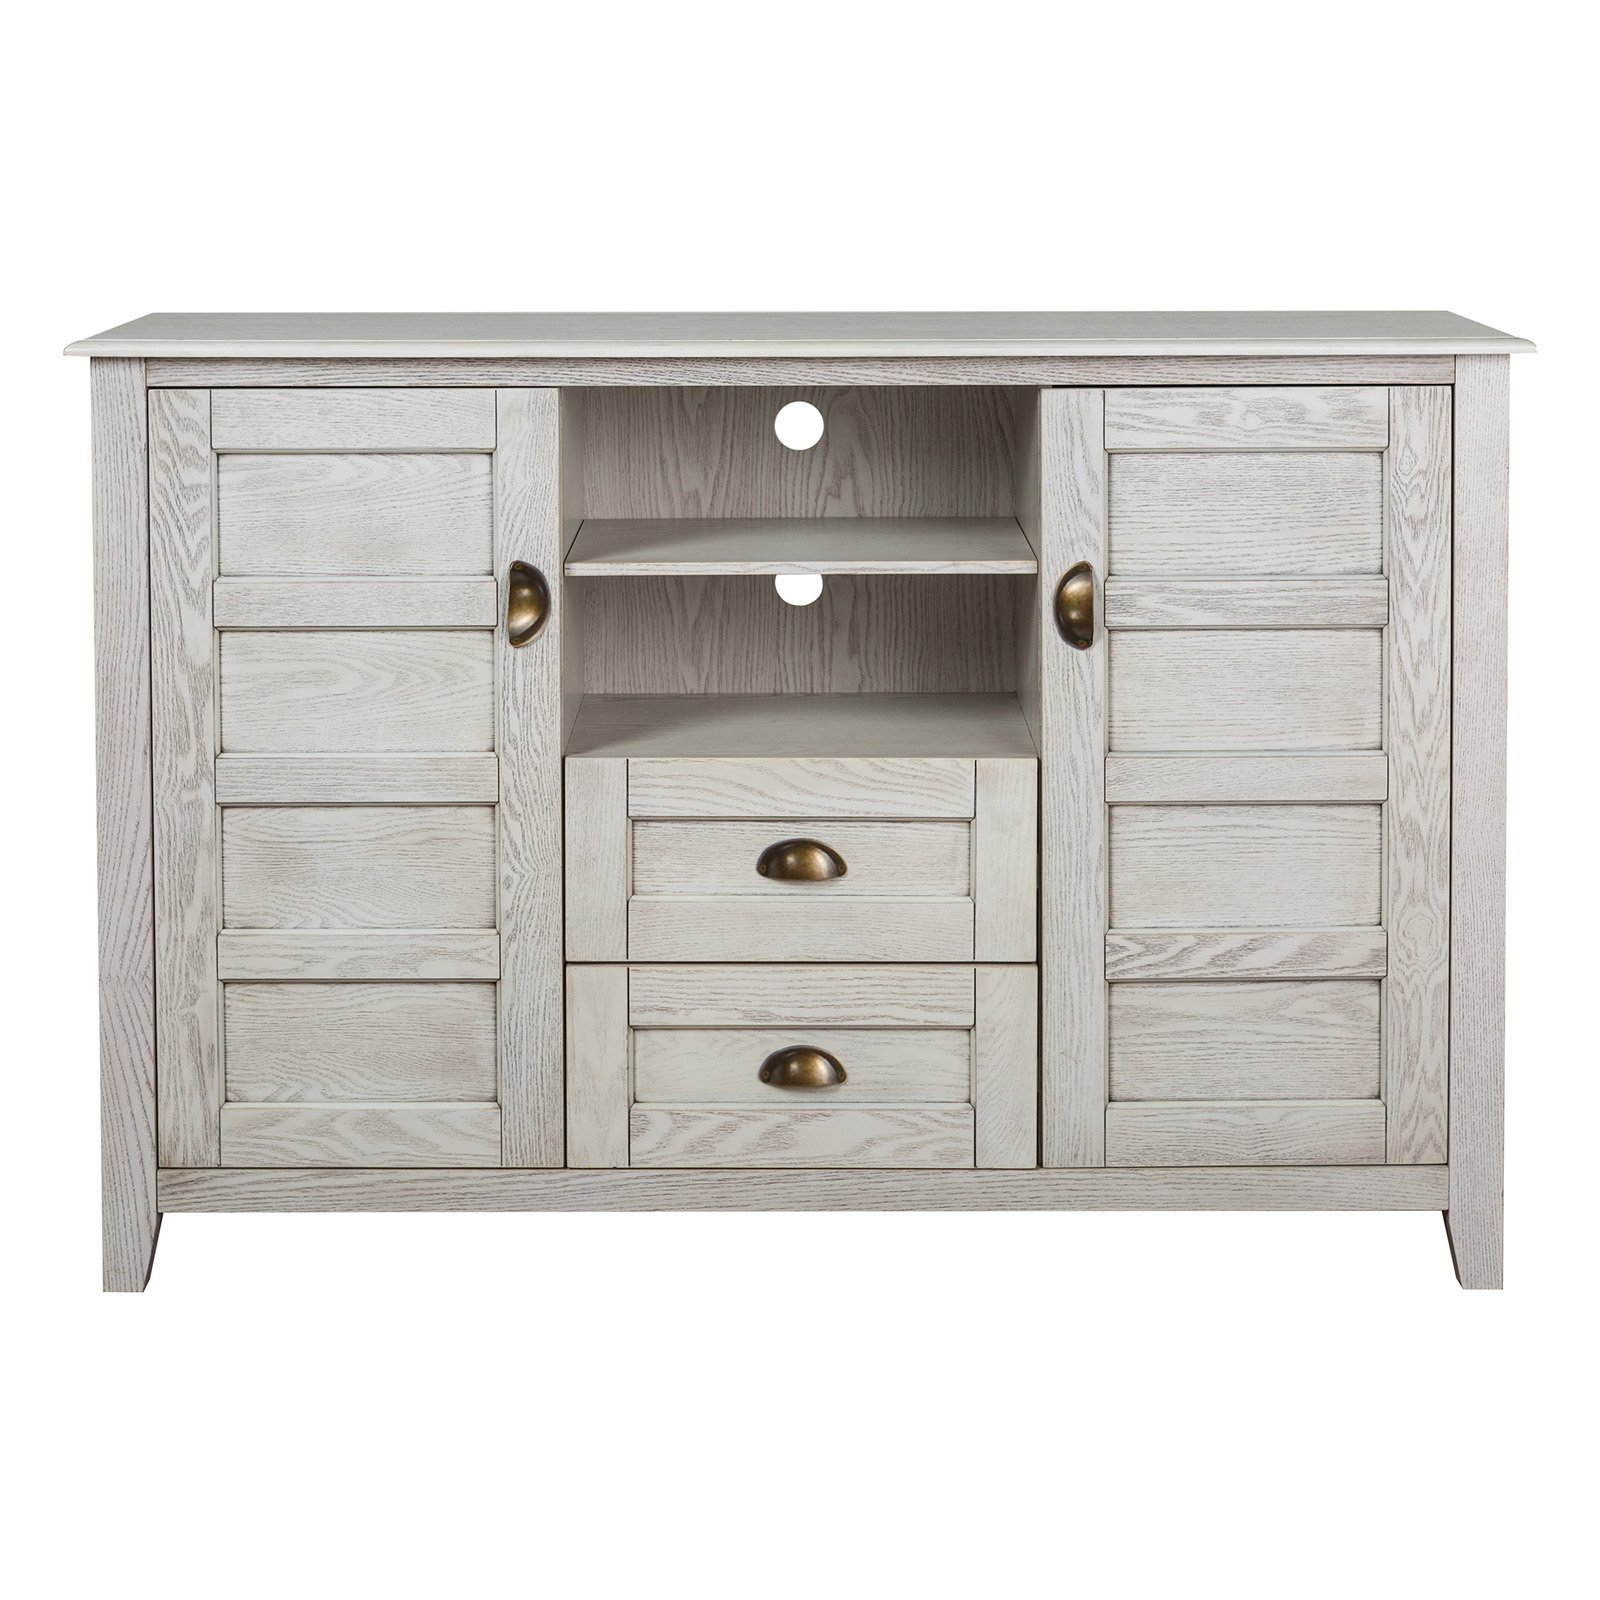 Walker Edison angelo:Home Rustic Chic TV Console